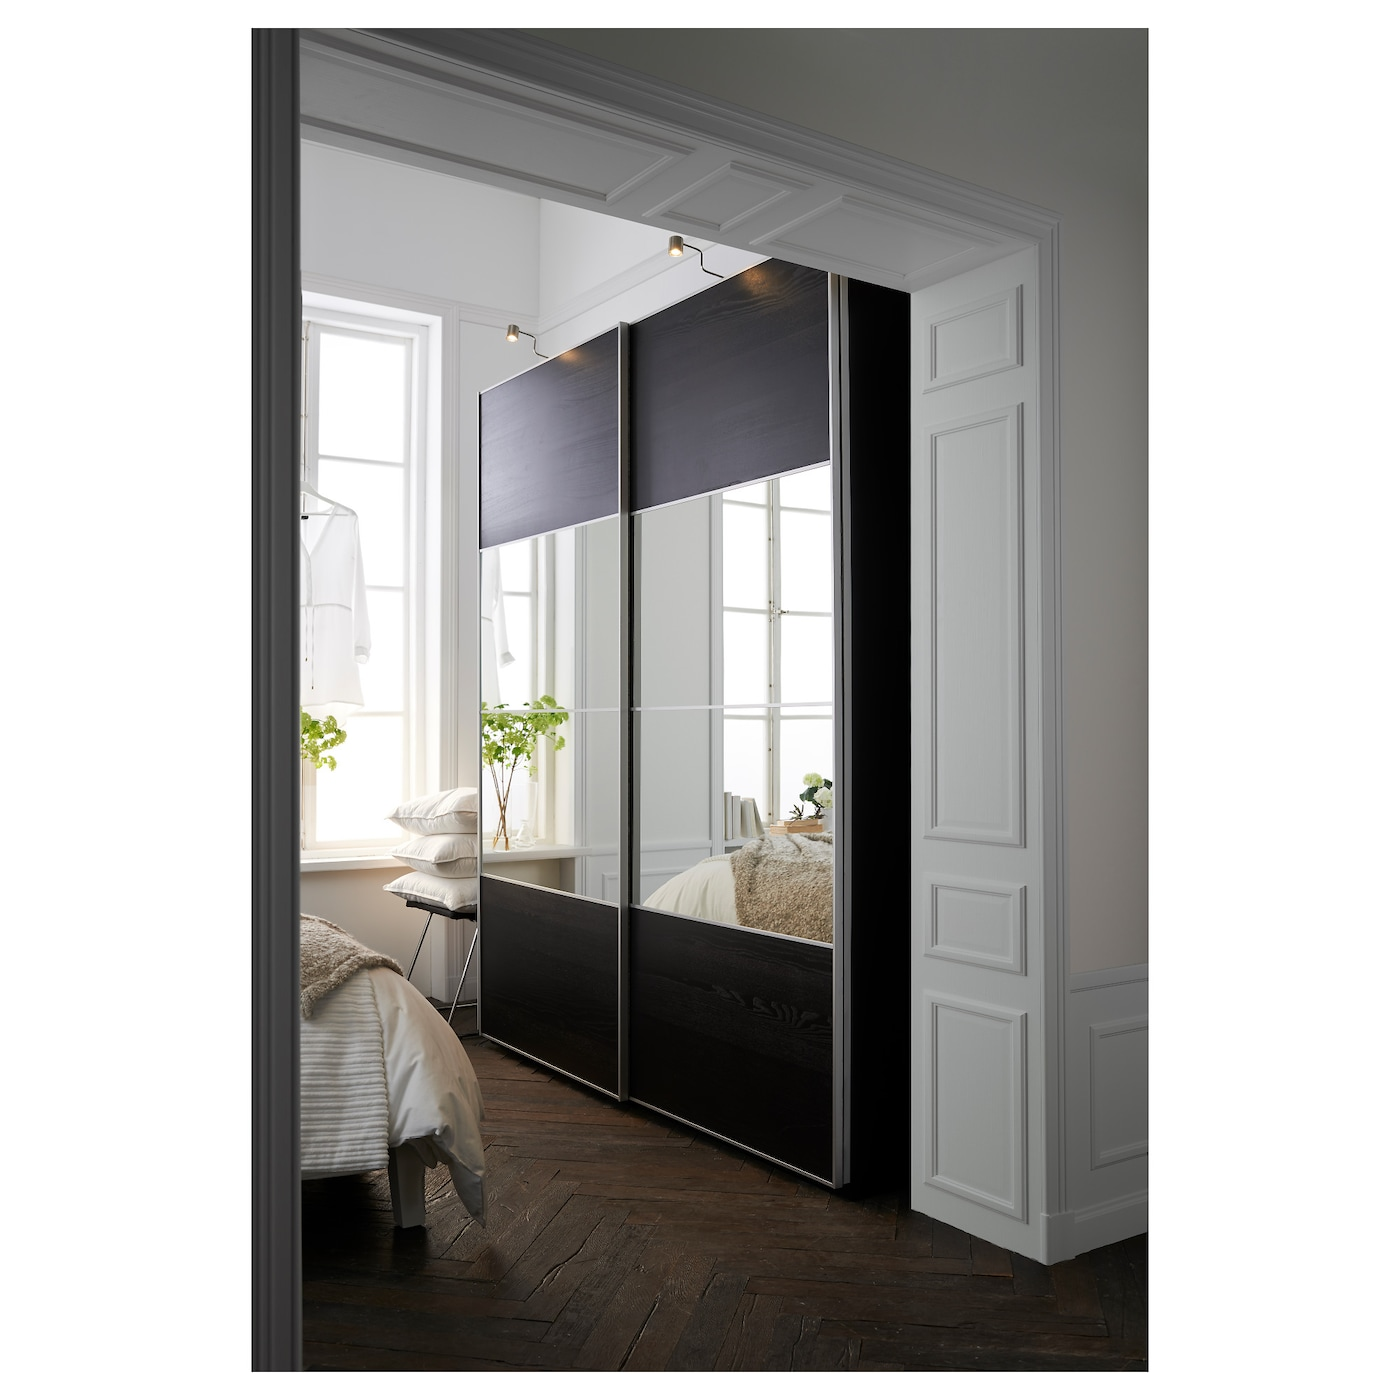 Pax wardrobe black brown auli ilseng 200x66x236 cm ikea for Placard mural entree